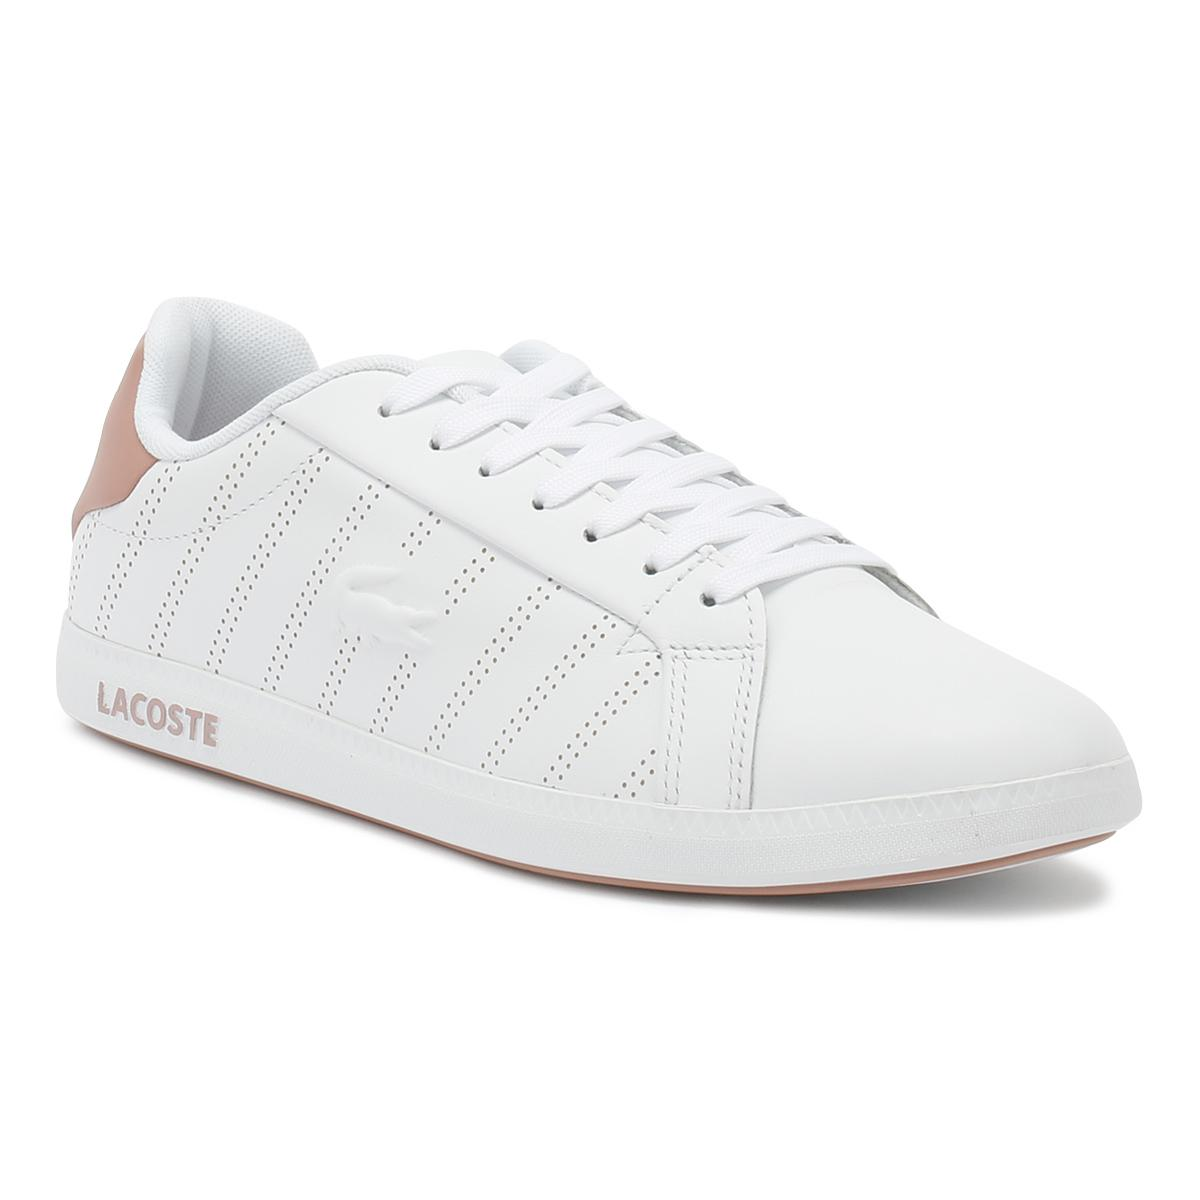 78c0d60f78b Lacoste - Womens White   Pink Graduate 318 1 Trainers - Lyst. View  fullscreen